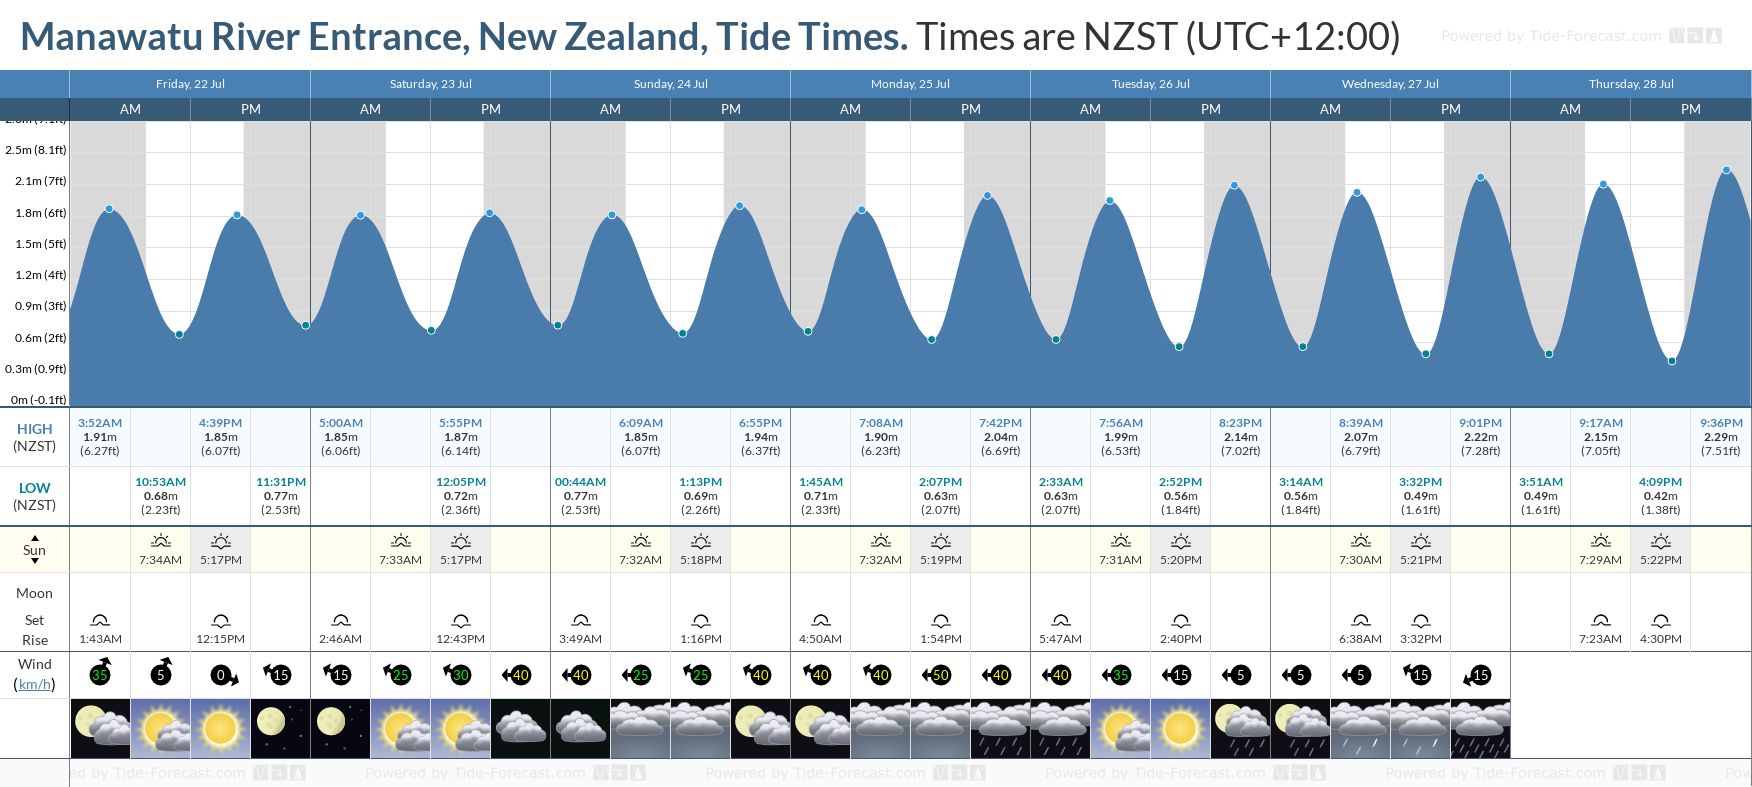 Manawatu River Entrance, New Zealand Tide Chart including high and low tide tide times for the next 7 days